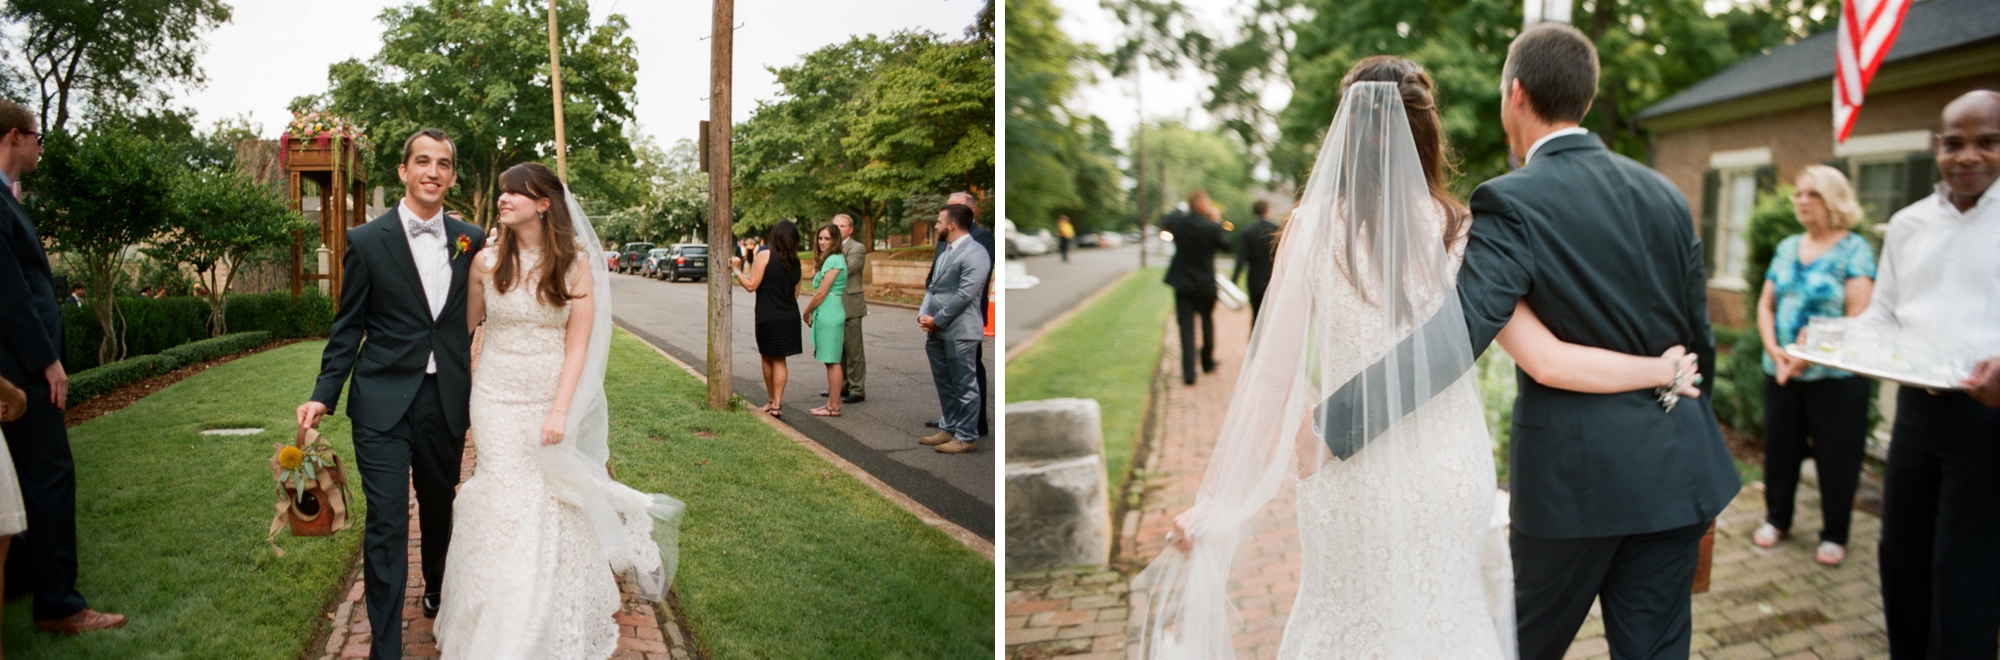 southern film wedding photographer_0089